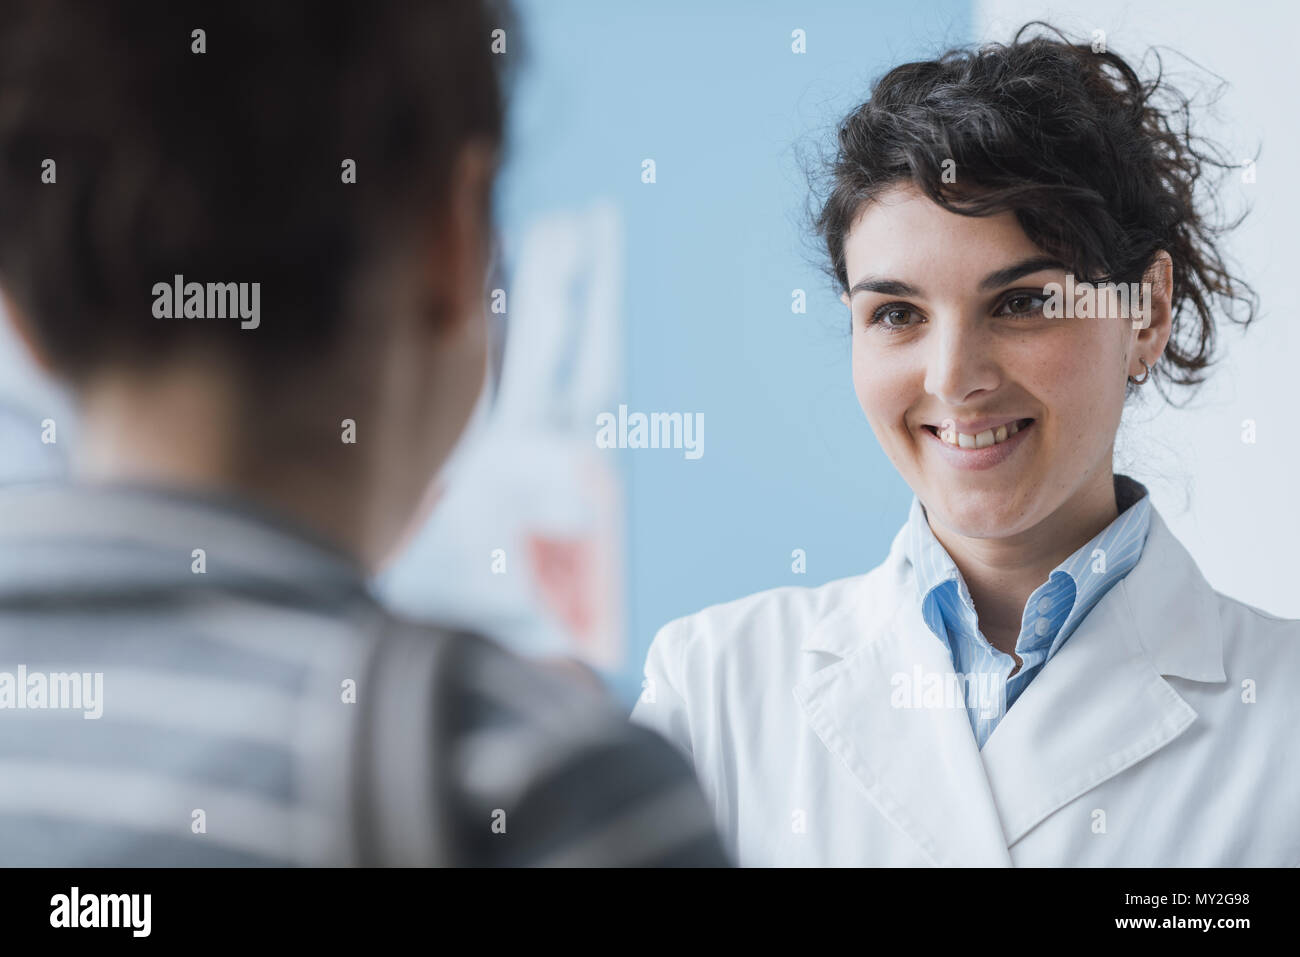 Doctor meeting a patient at the clinic for a medical consultation, healthcare and medicine concept - Stock Image